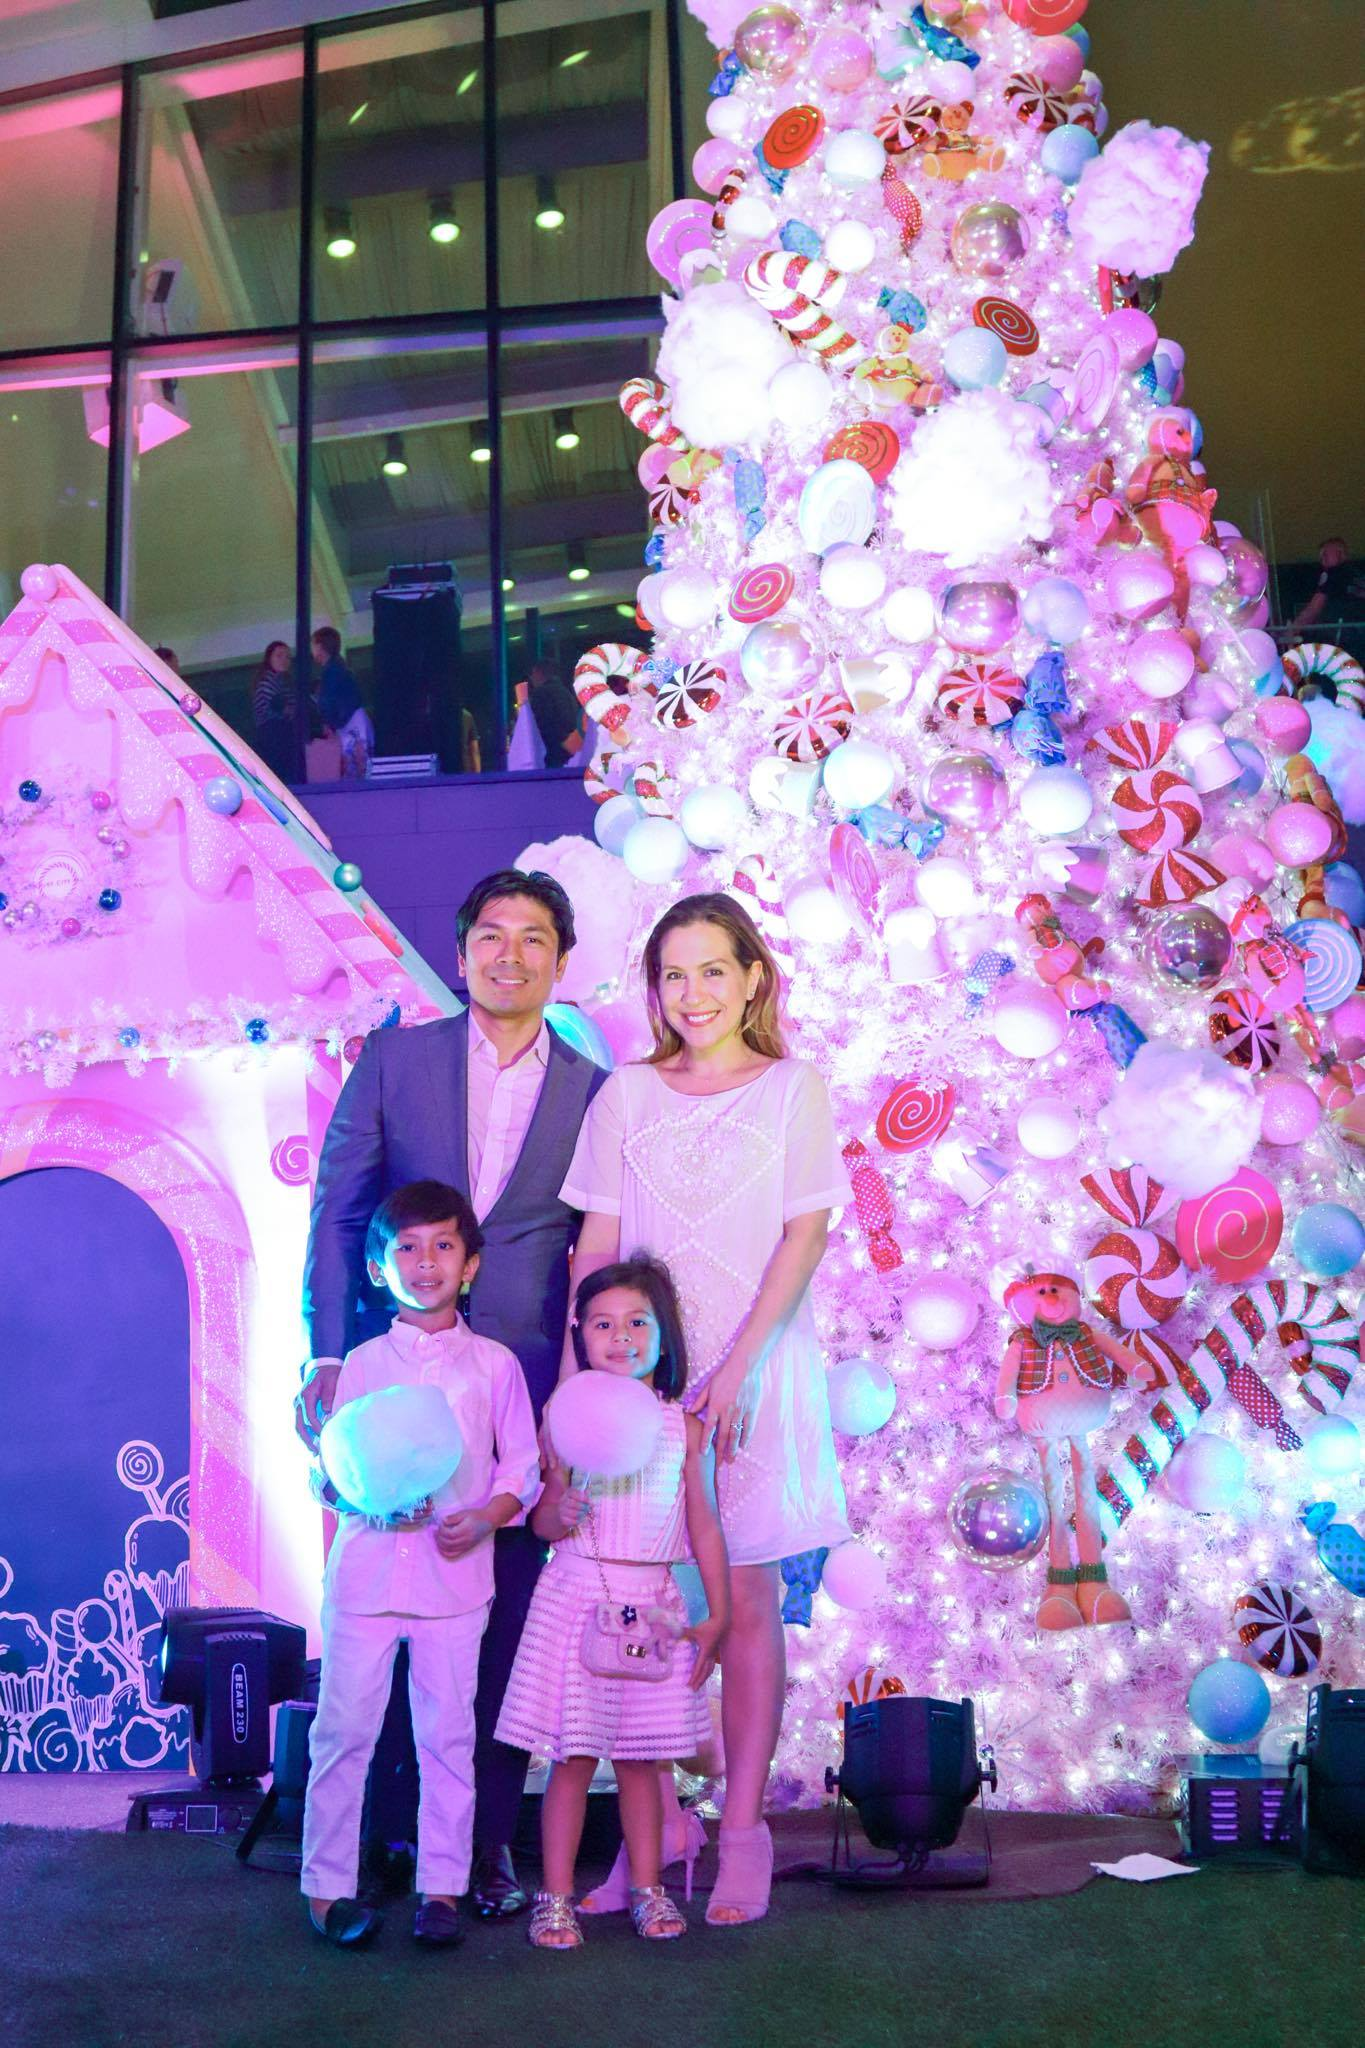 celebrating-candied-holiday-cheer-century-city-mall